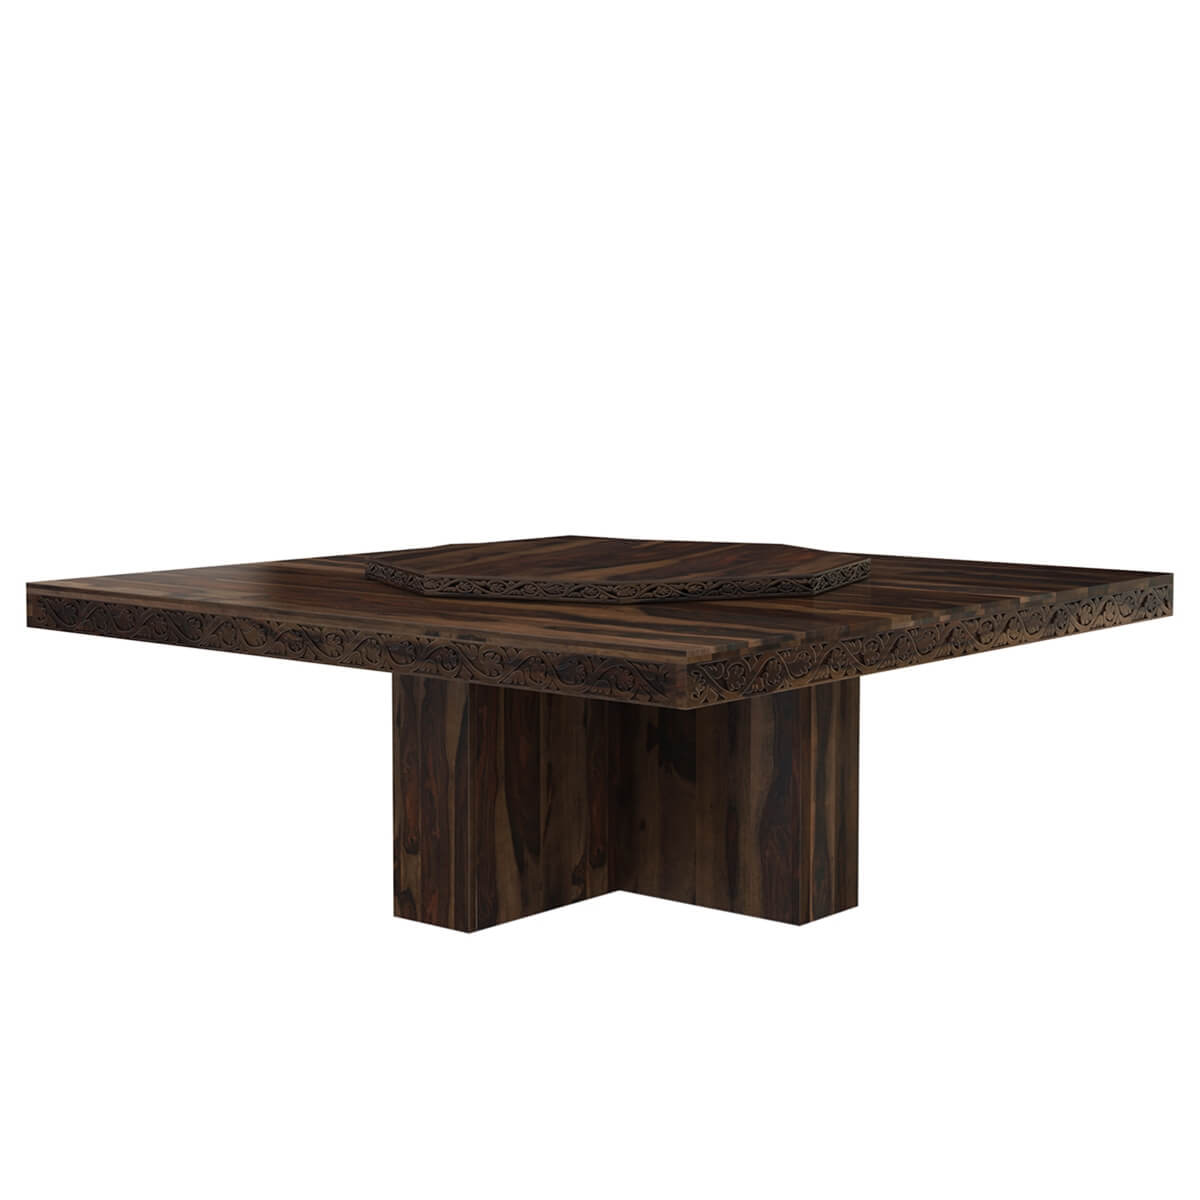 Rustic Solid Wood Large Square Pedestal Dining Table with  : 70031 from www.sierralivingconcepts.com size 1200 x 1200 jpeg 65kB